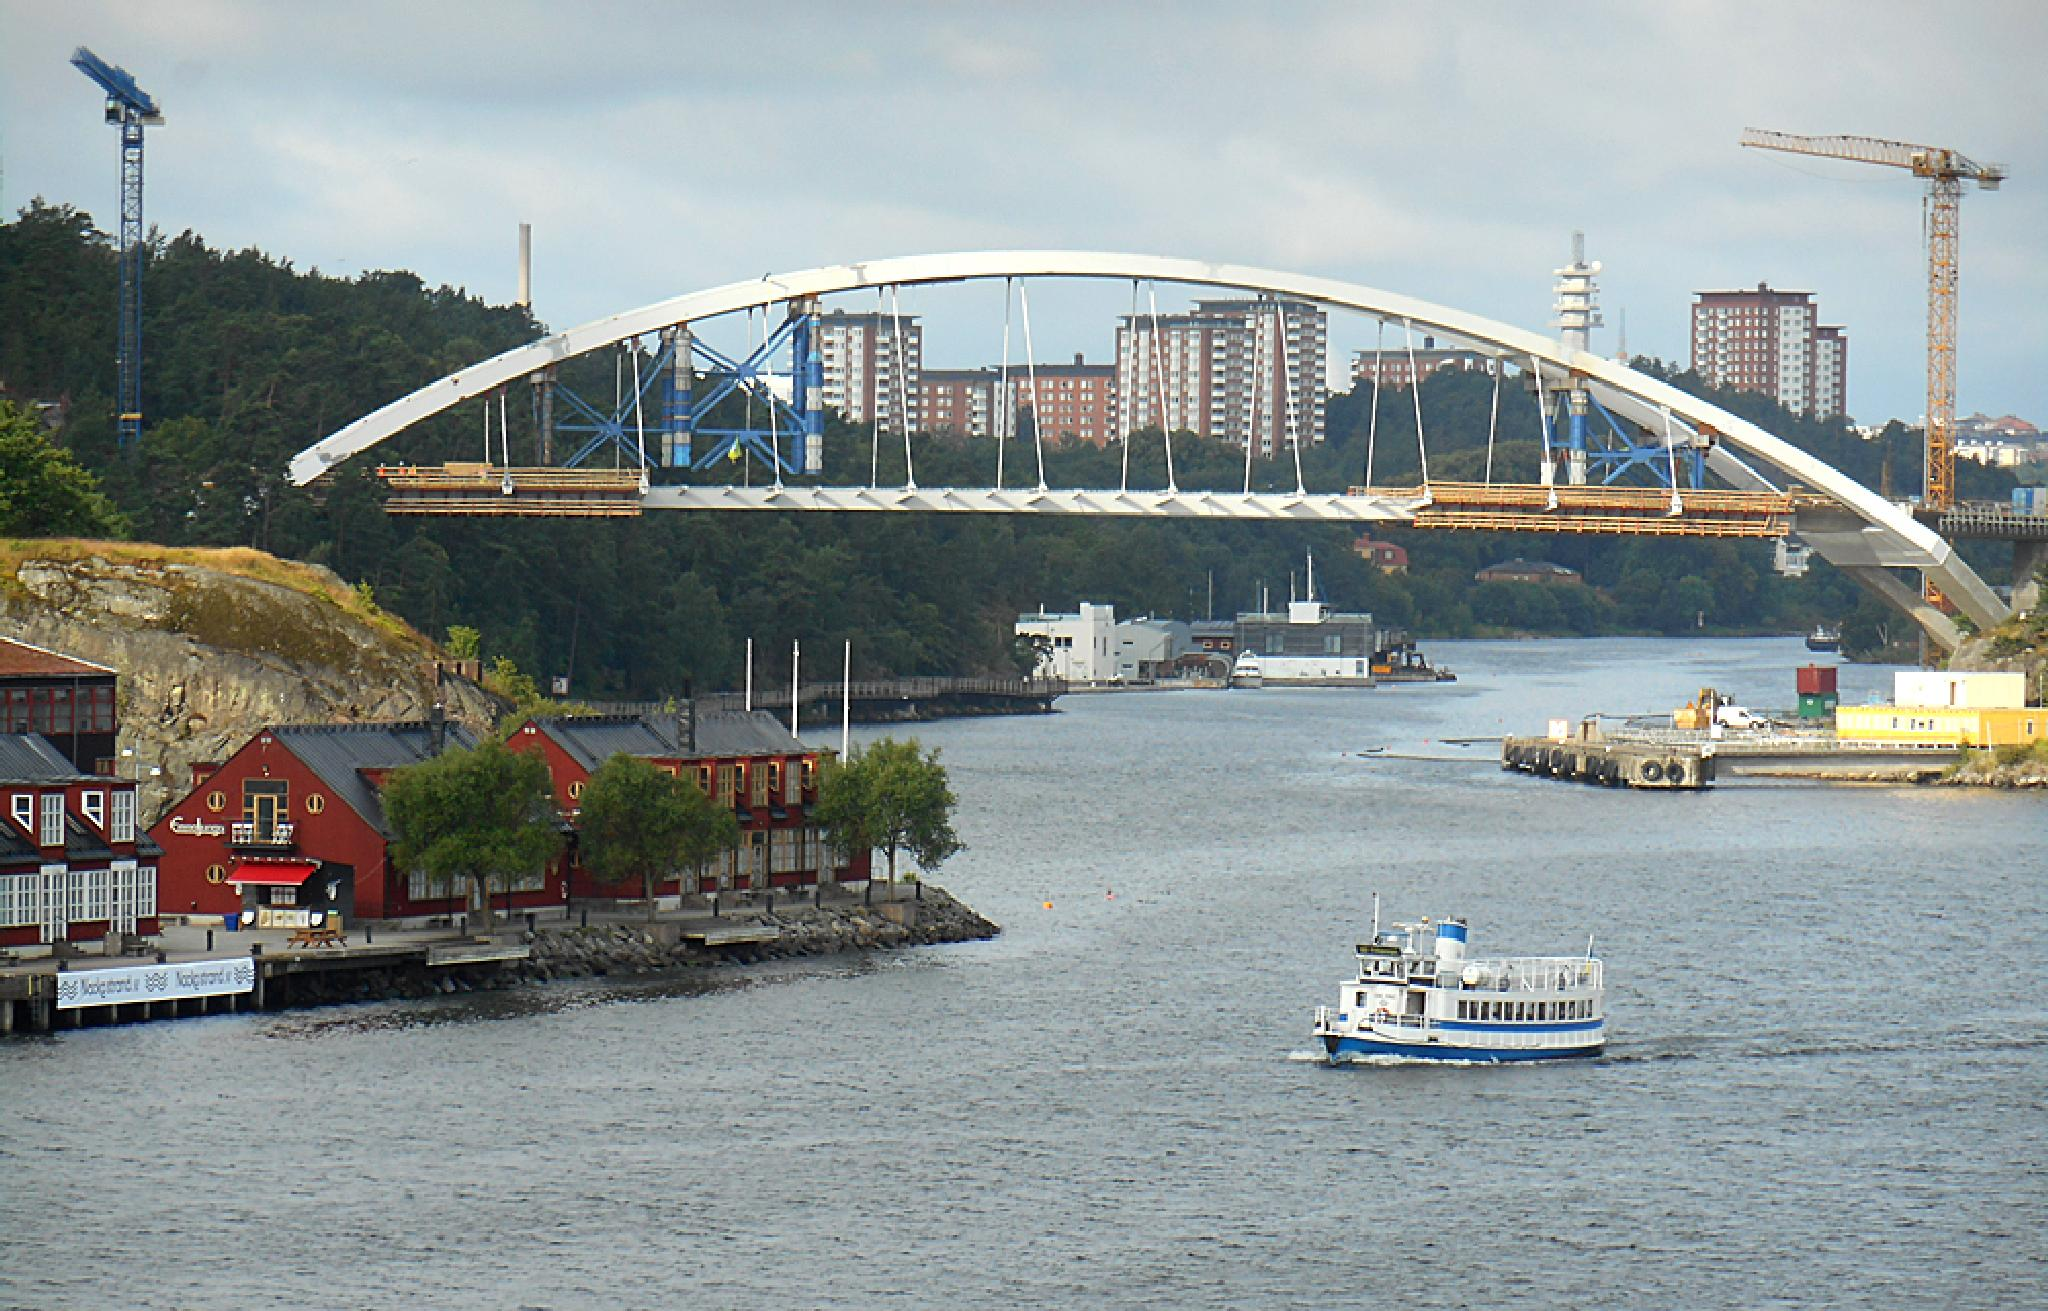 Stockholm New Railway Bridge Construction 1-22 July 2015. by Owen Smithers